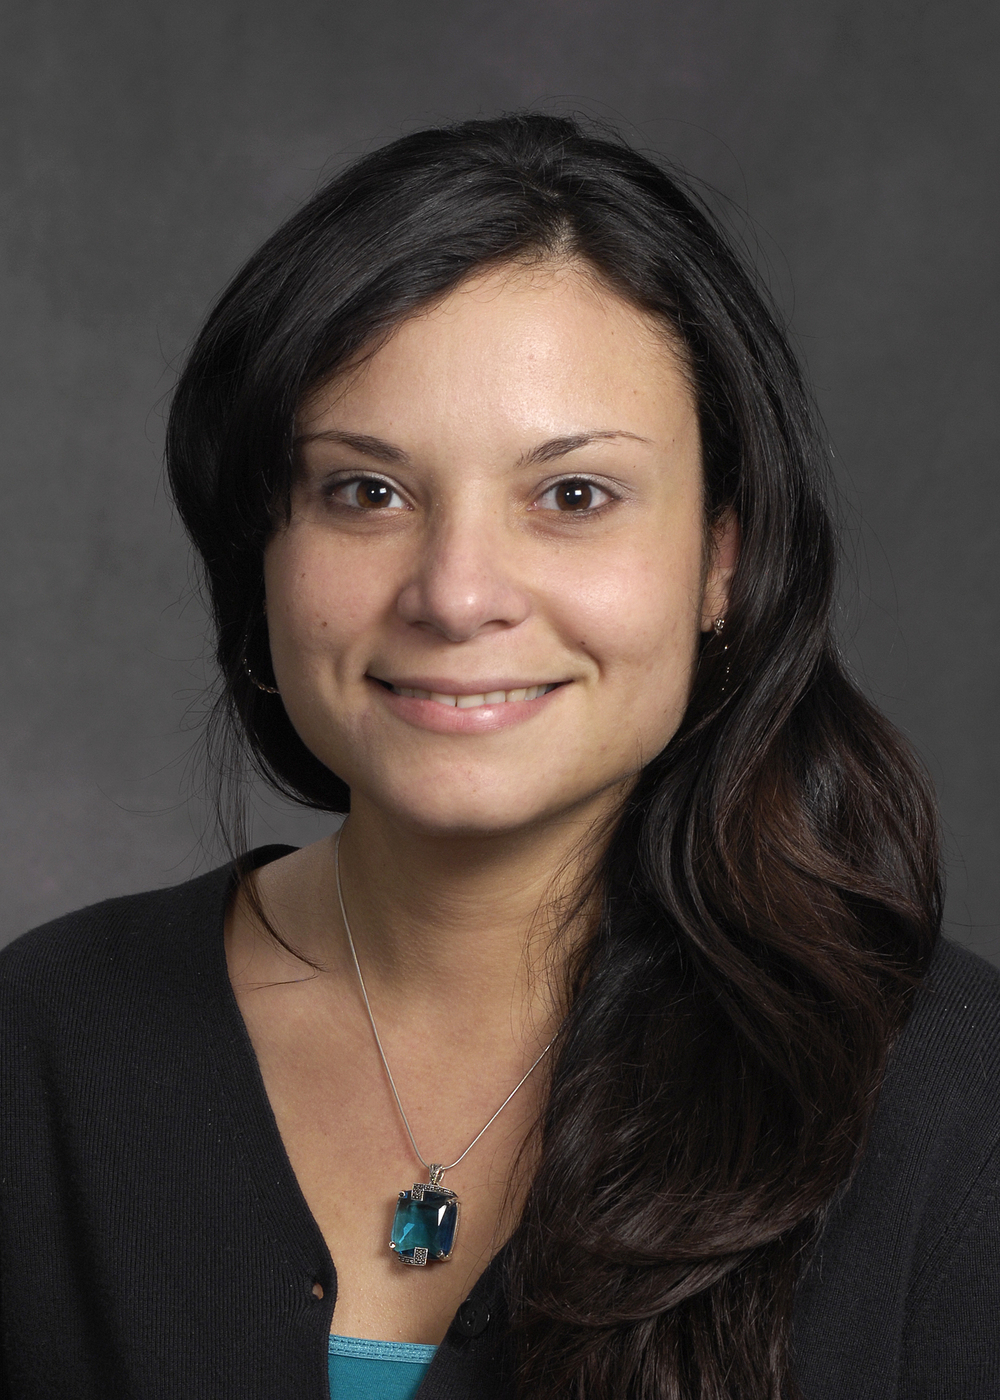 Nácaly Torres Hispanic Discovery, Class of 2013